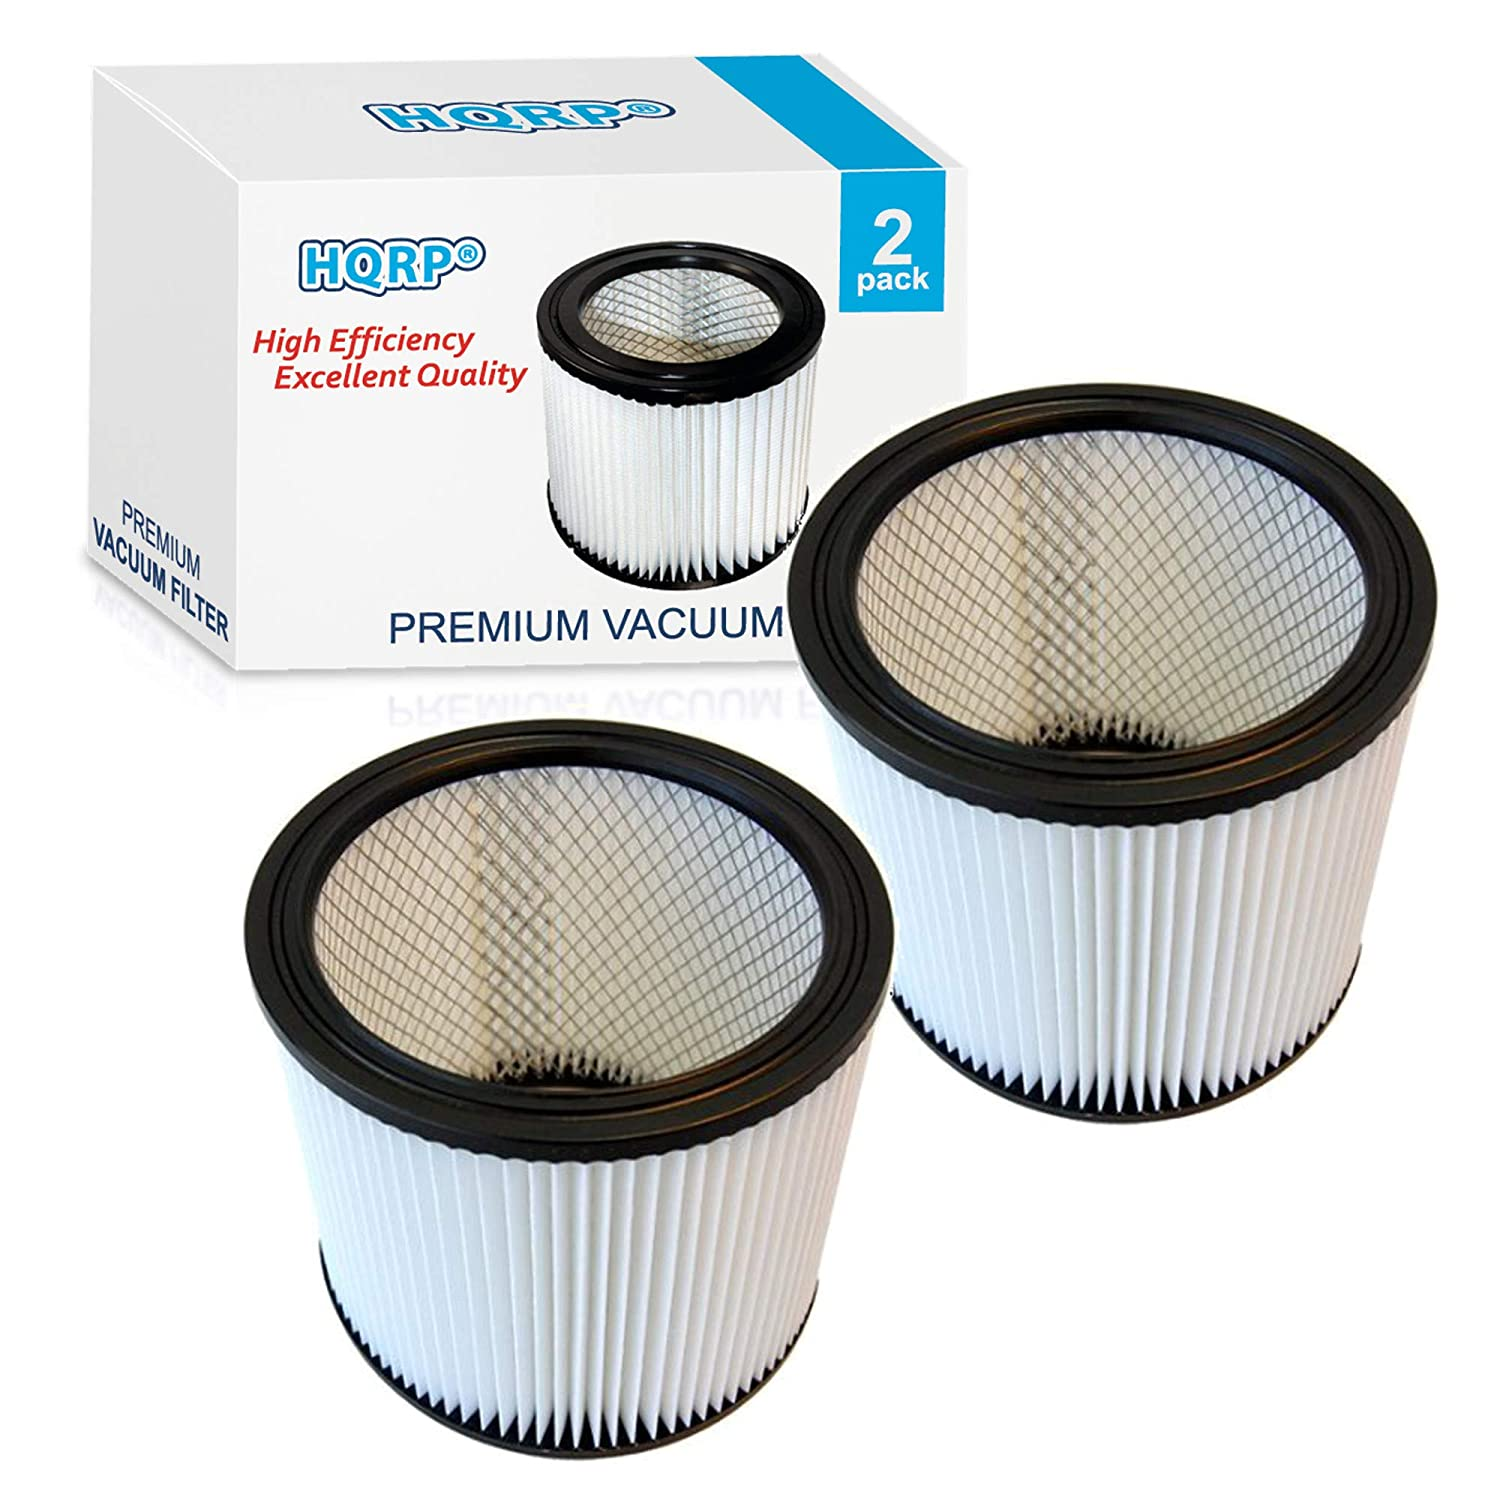 HQRP 2-Pack HEPA Cartridge Filter for Shop vac 90304 Type U 9030400 903-04 903-04-00 Replacement fits most Wet/Dry Pickup Vacuum Cleaner Coaster